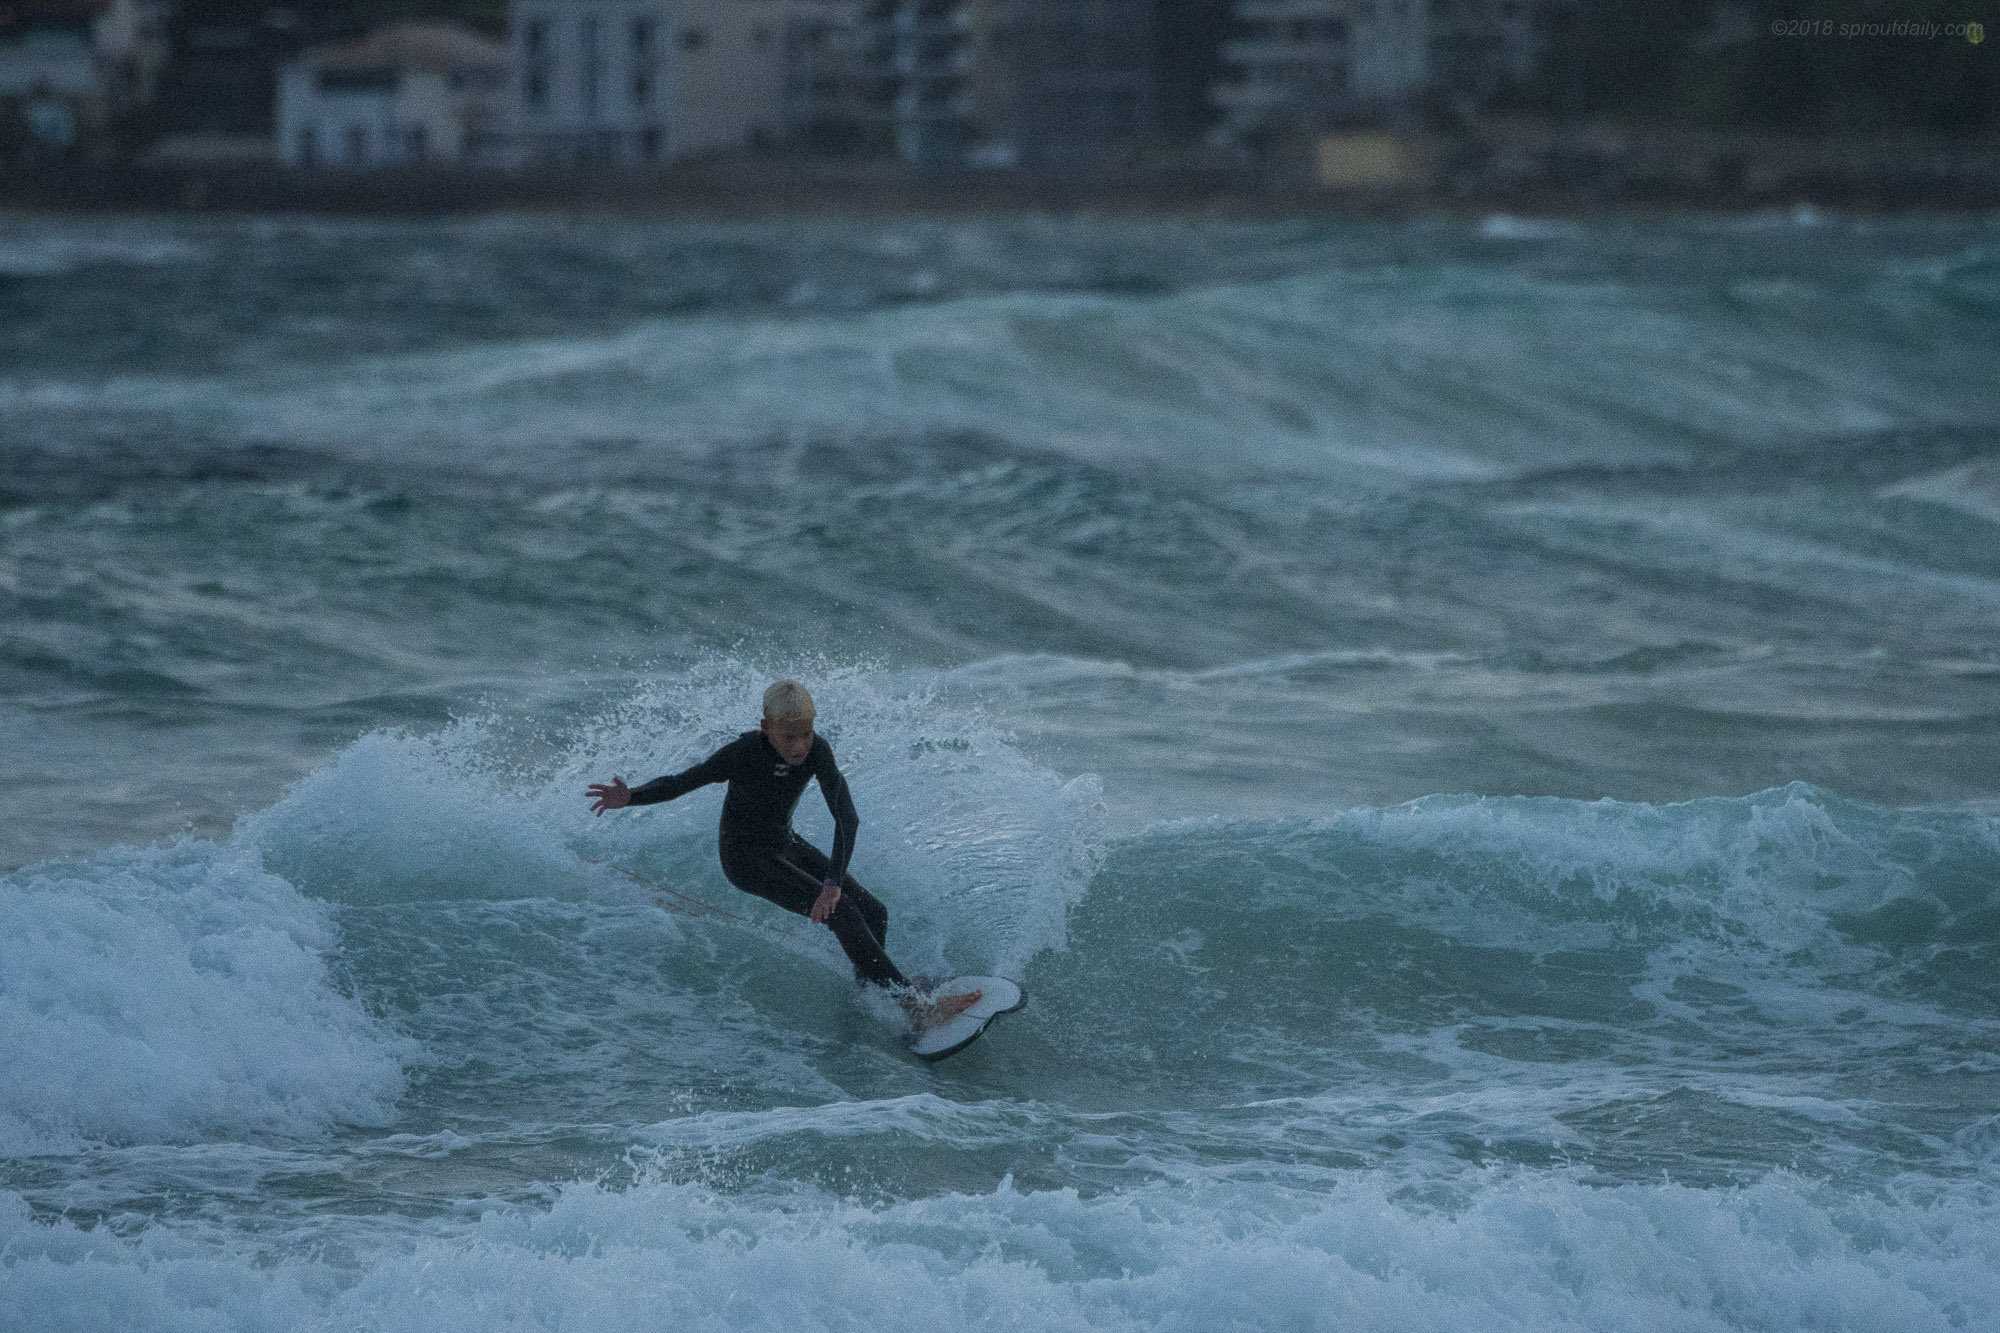 A mirrored young Mick Fanning?